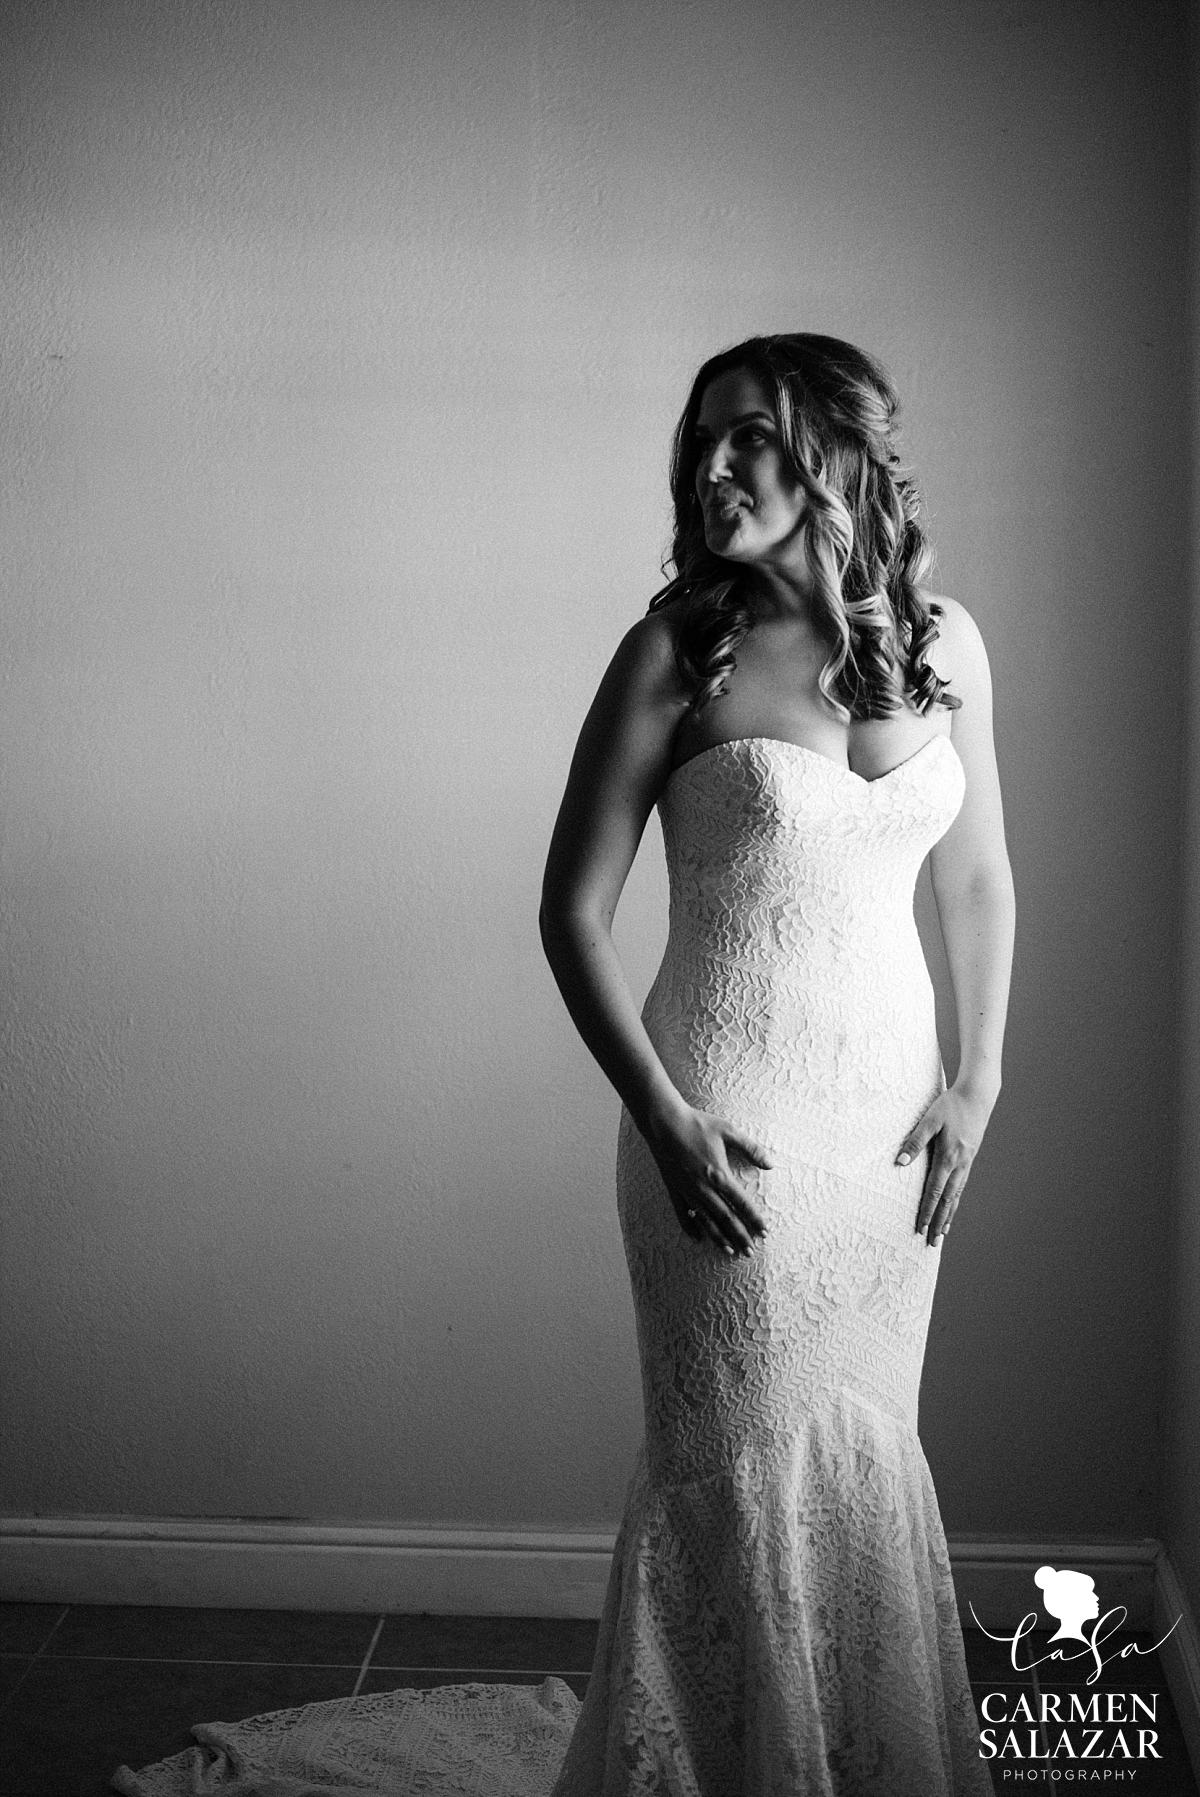 Moody bridal getting ready portraits - Carmen Salazar